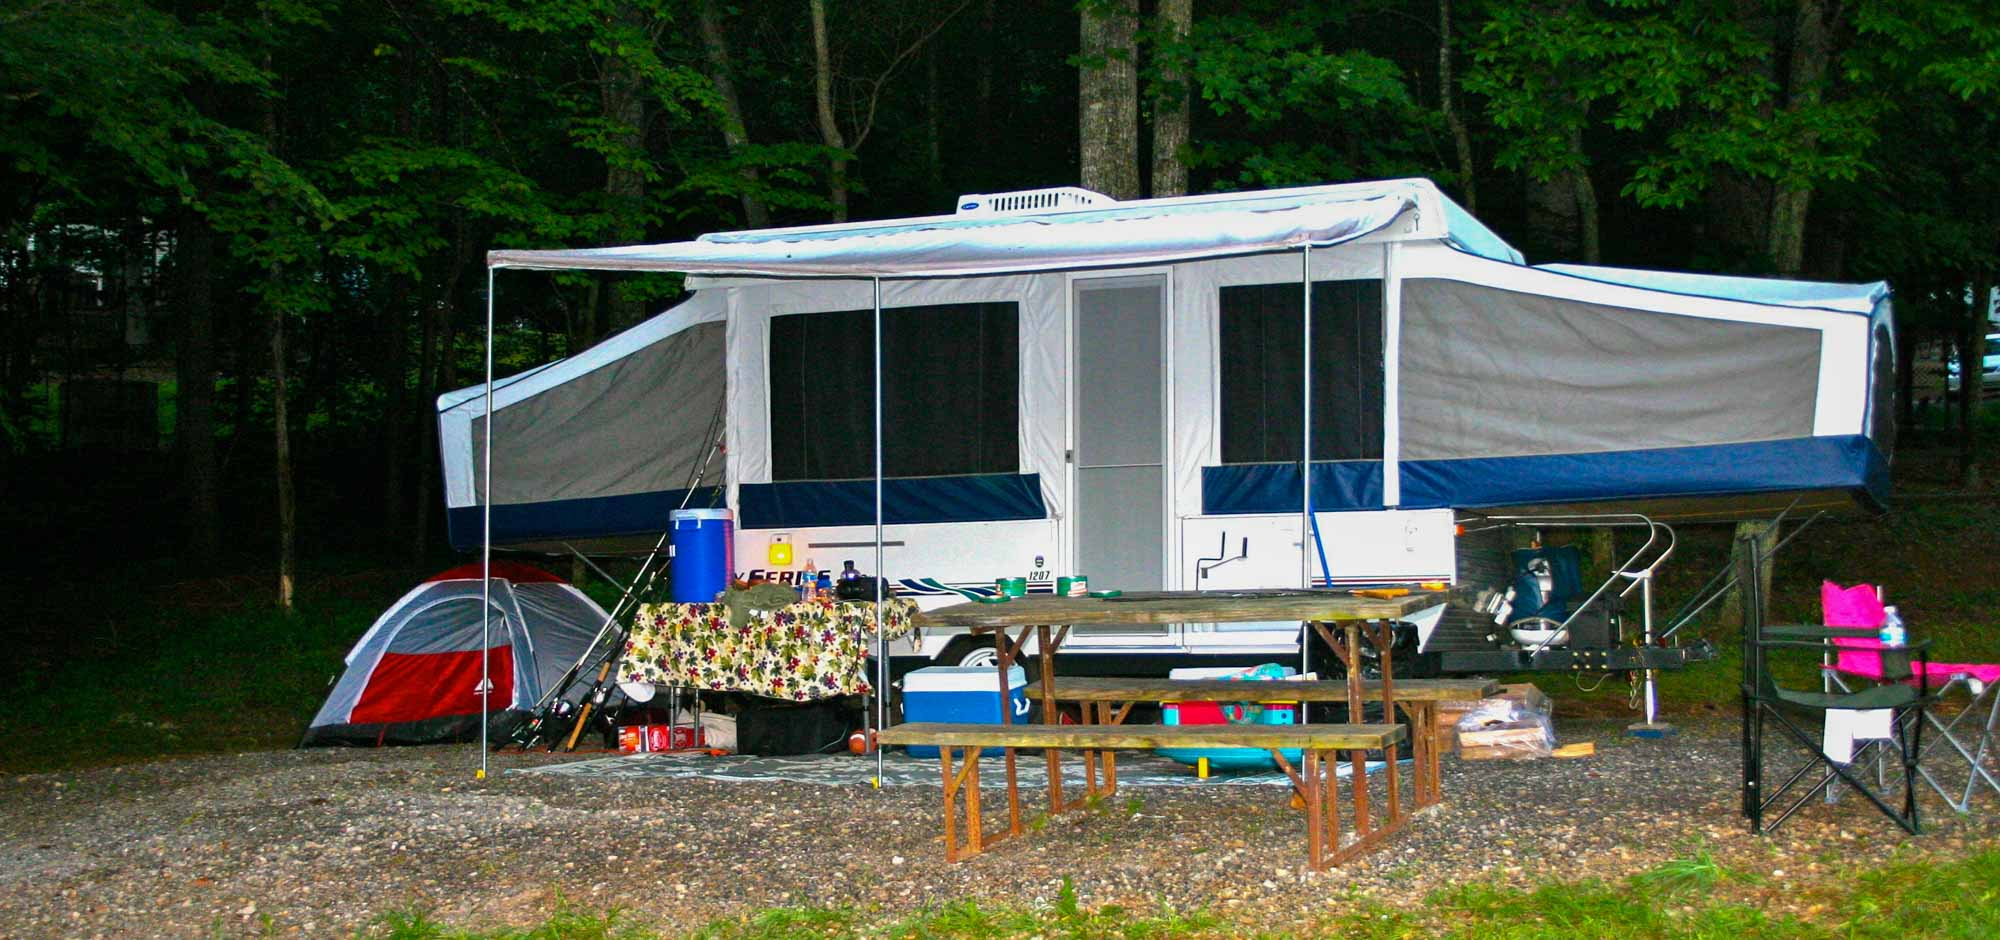 camper with tent and picnic table